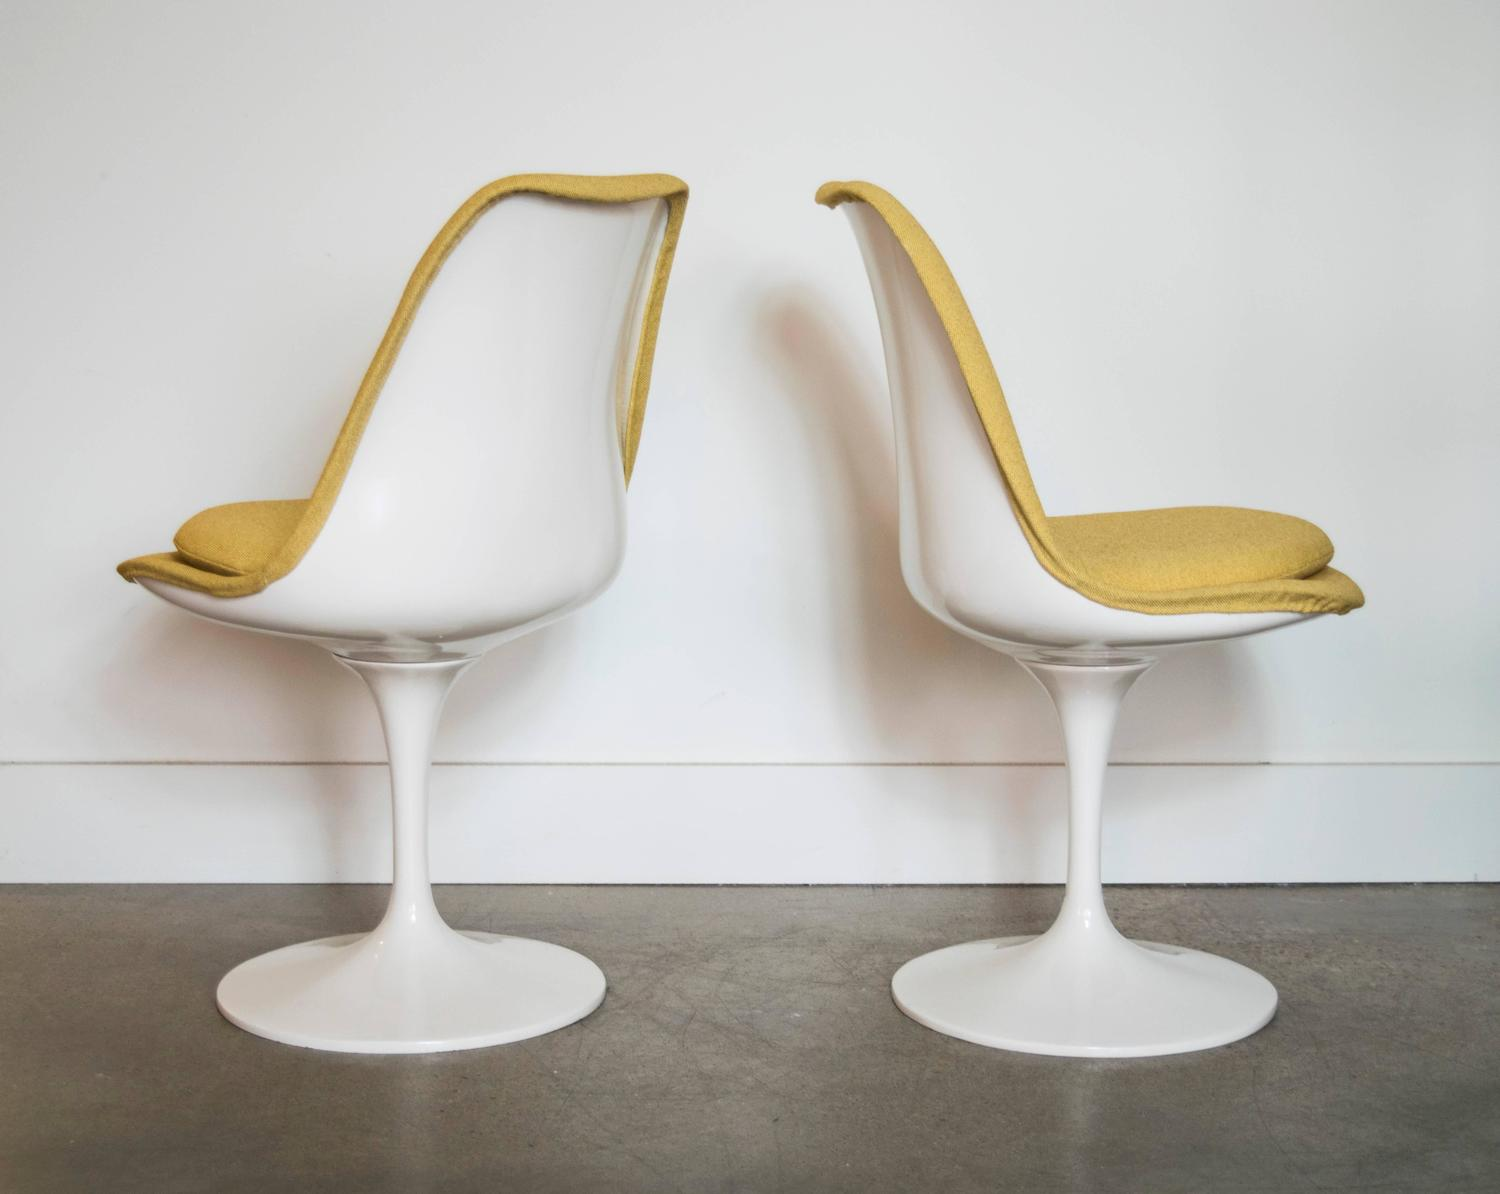 Ten early knoll fully upholstered saarinen tulip chairs for sale at 1stdibs - Tulip chairs for sale ...